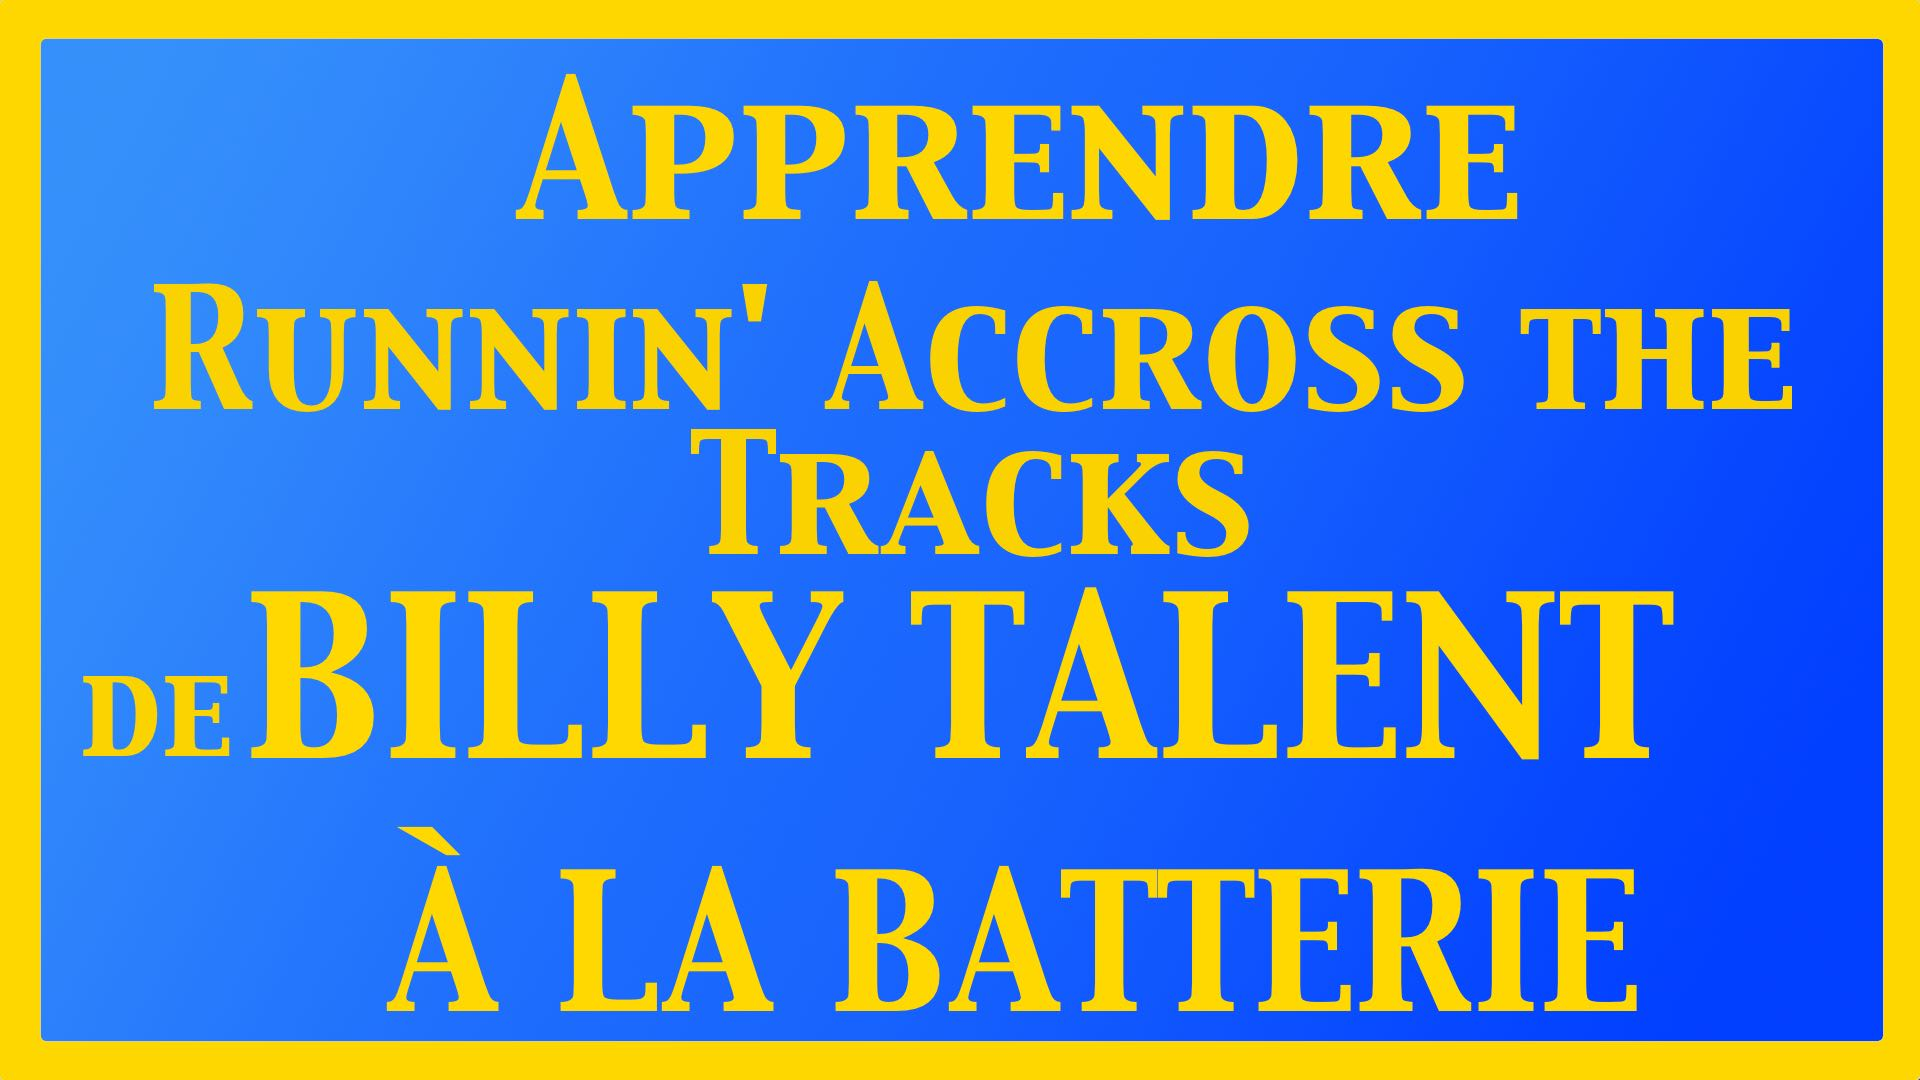 Déconstruction: Apprenez « Runnin' Accross the Tracks » de Billy Talent à la batterie